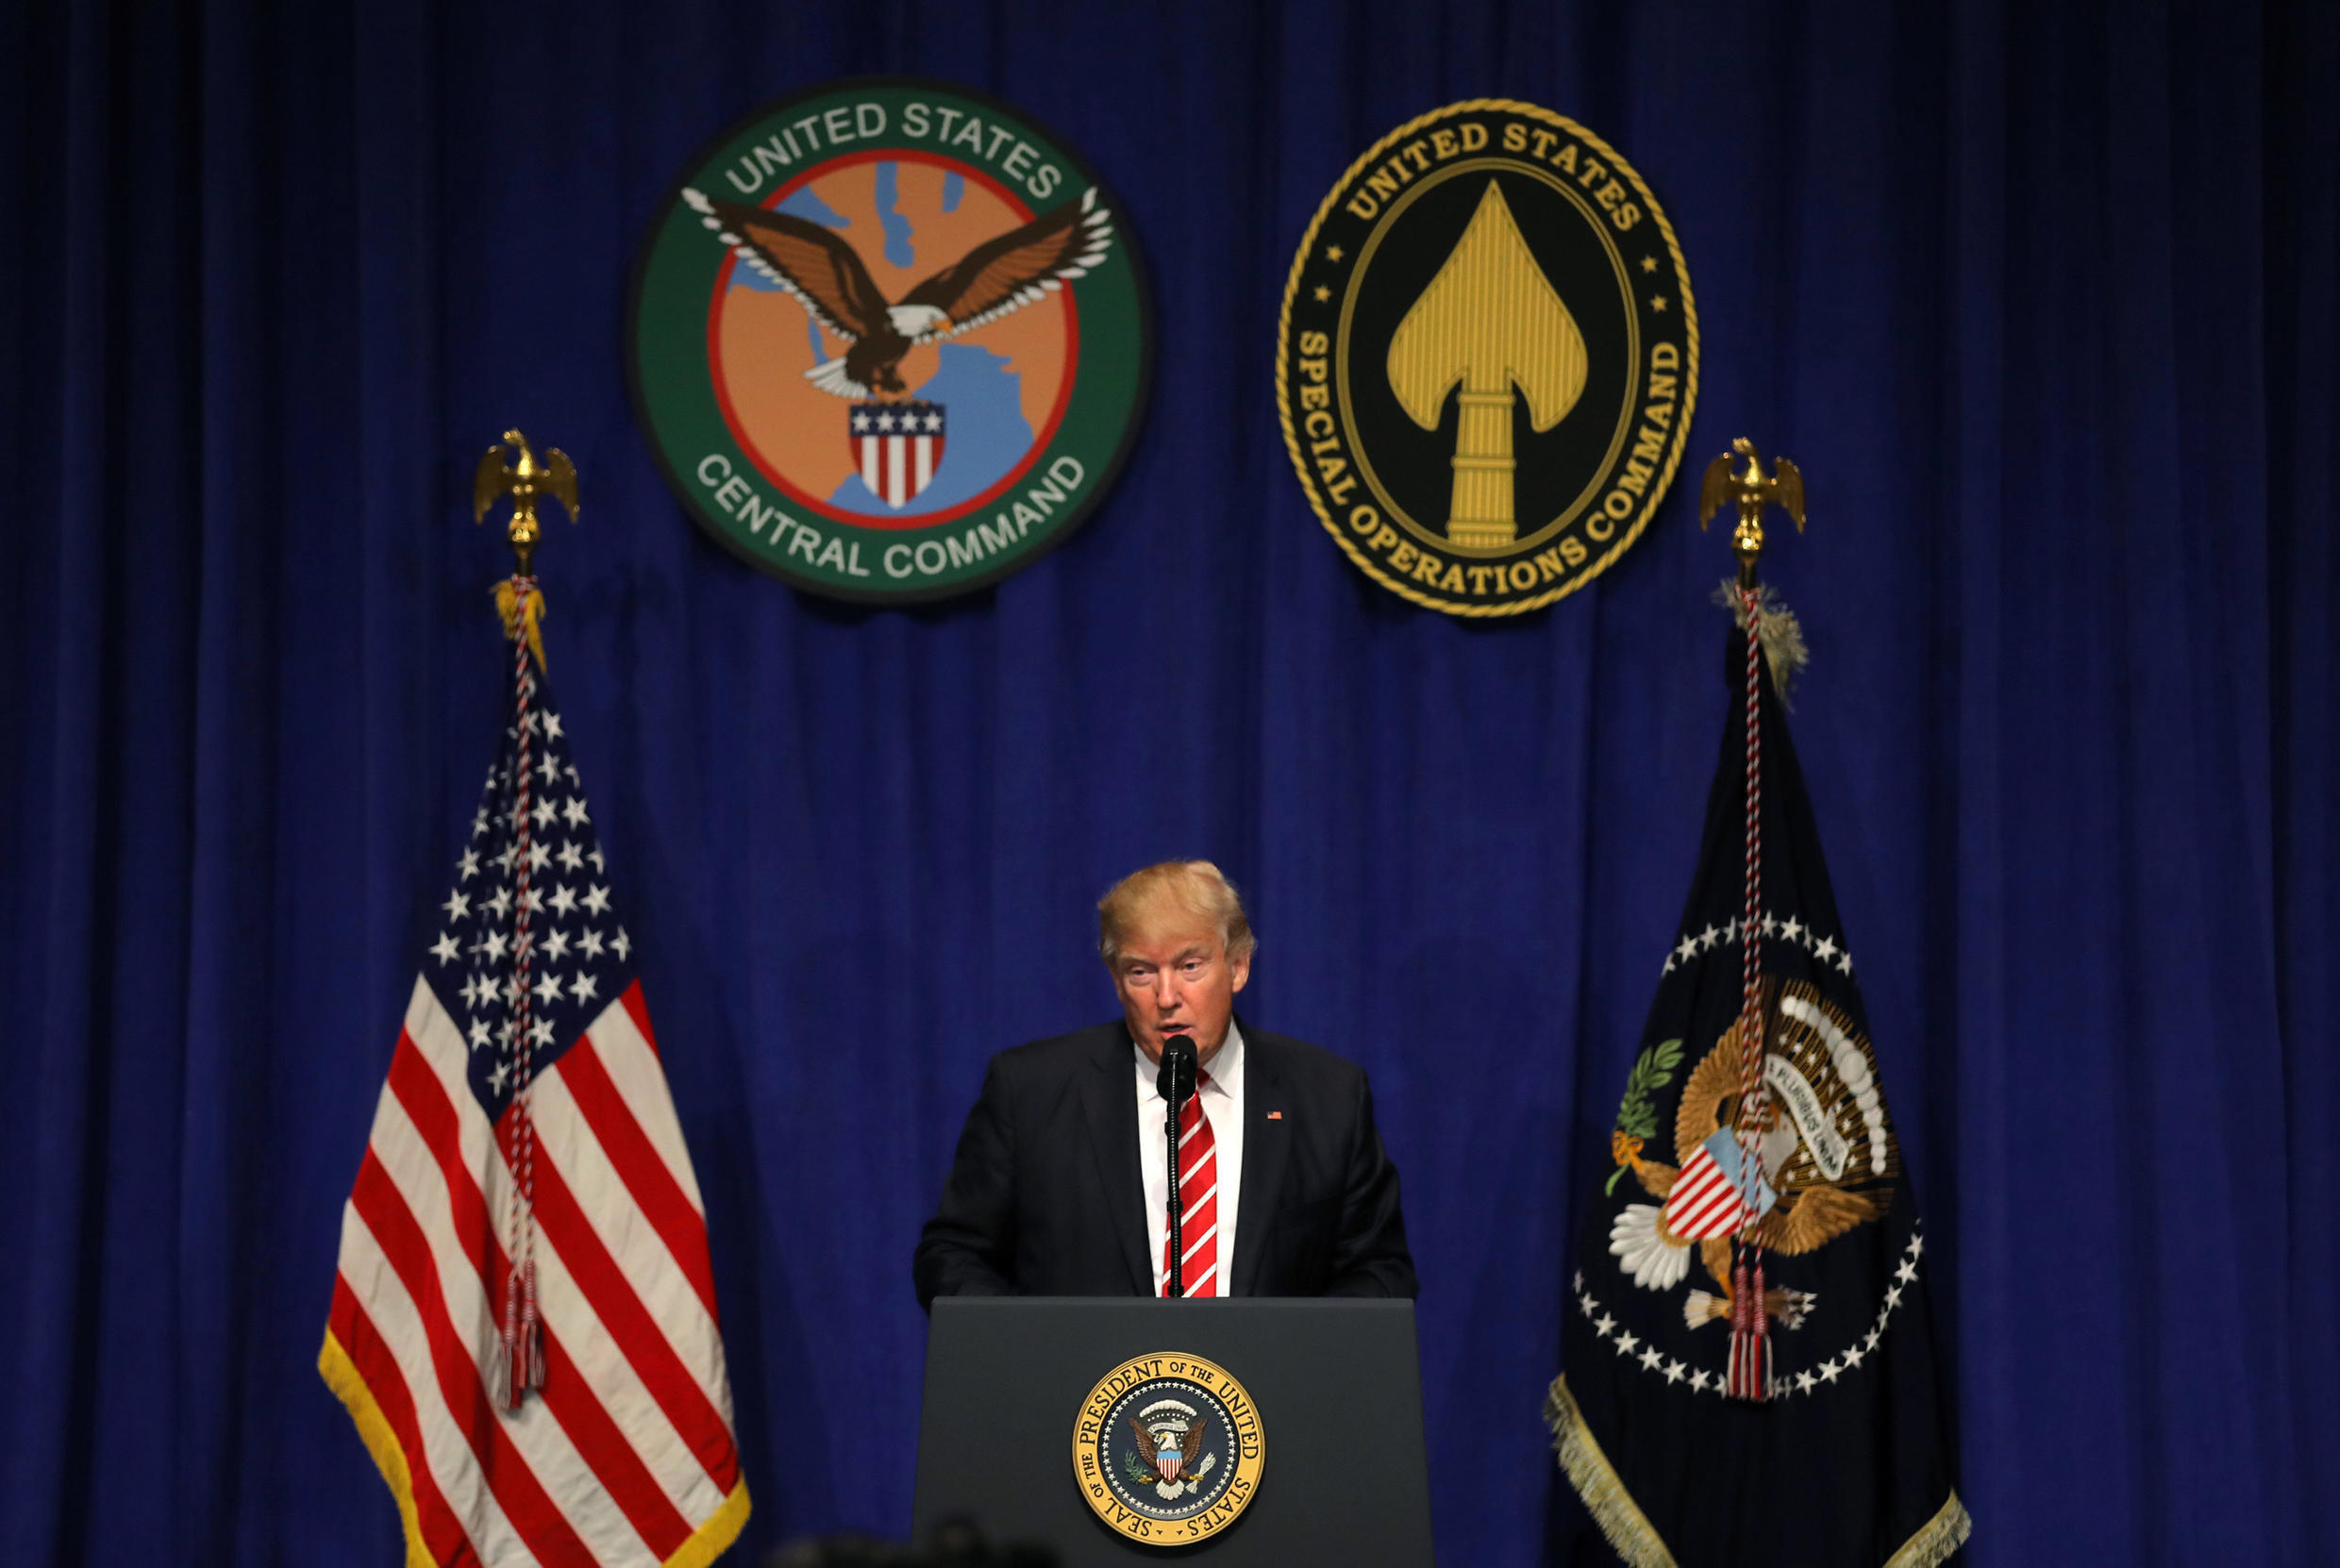 U.S. President Donald Trump speaks to commanders and coalition representatives during a visit to U.S. Central Command and U.S. Special Operations Command at MacDill Air Force Base in Tampa, Florida, U.S., February 6, 2017.